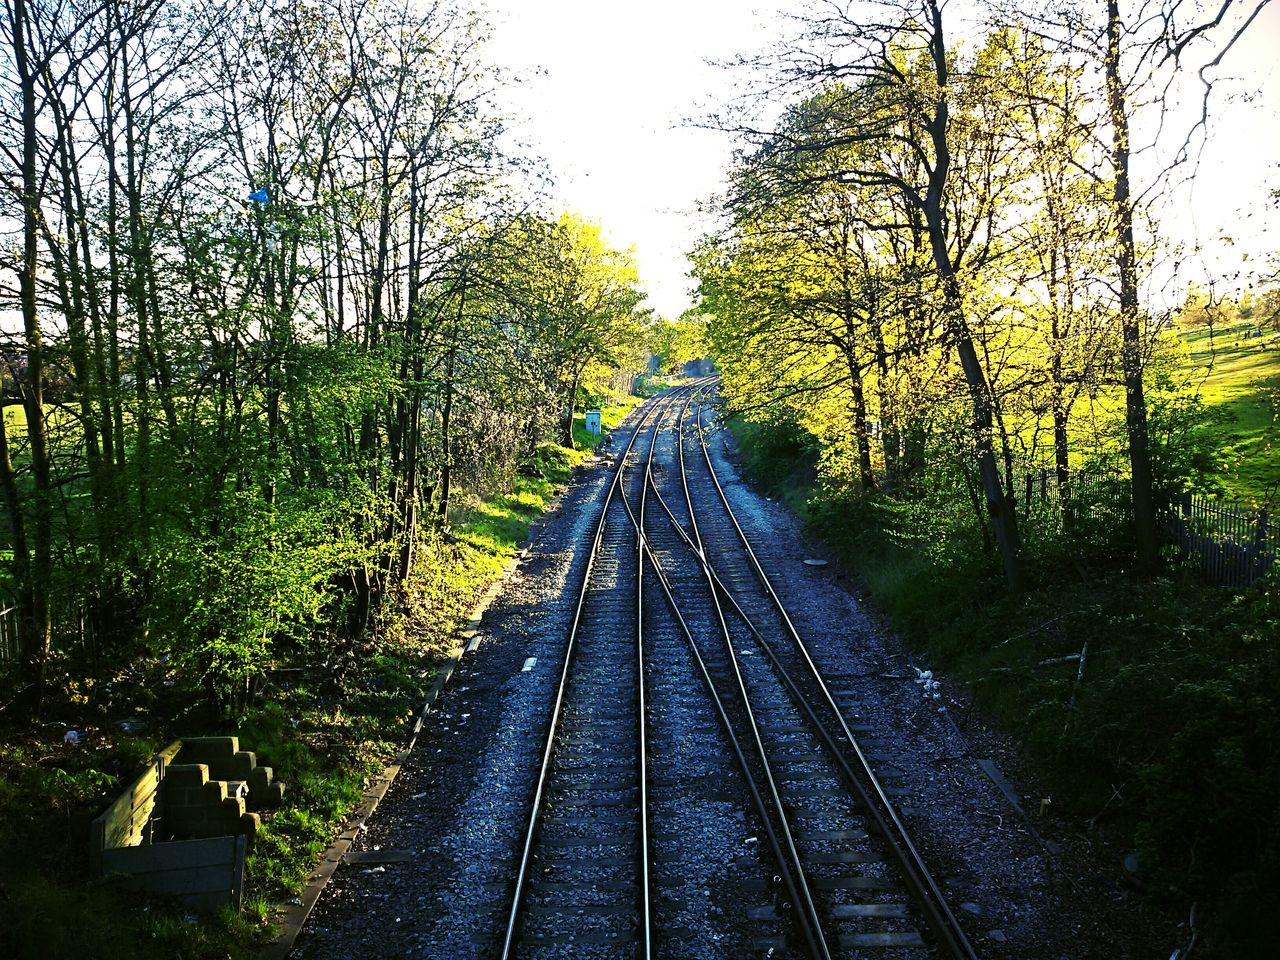 railroad track, rail transportation, tree, transportation, the way forward, public transportation, day, nature, growth, outdoors, no people, beauty in nature, sky